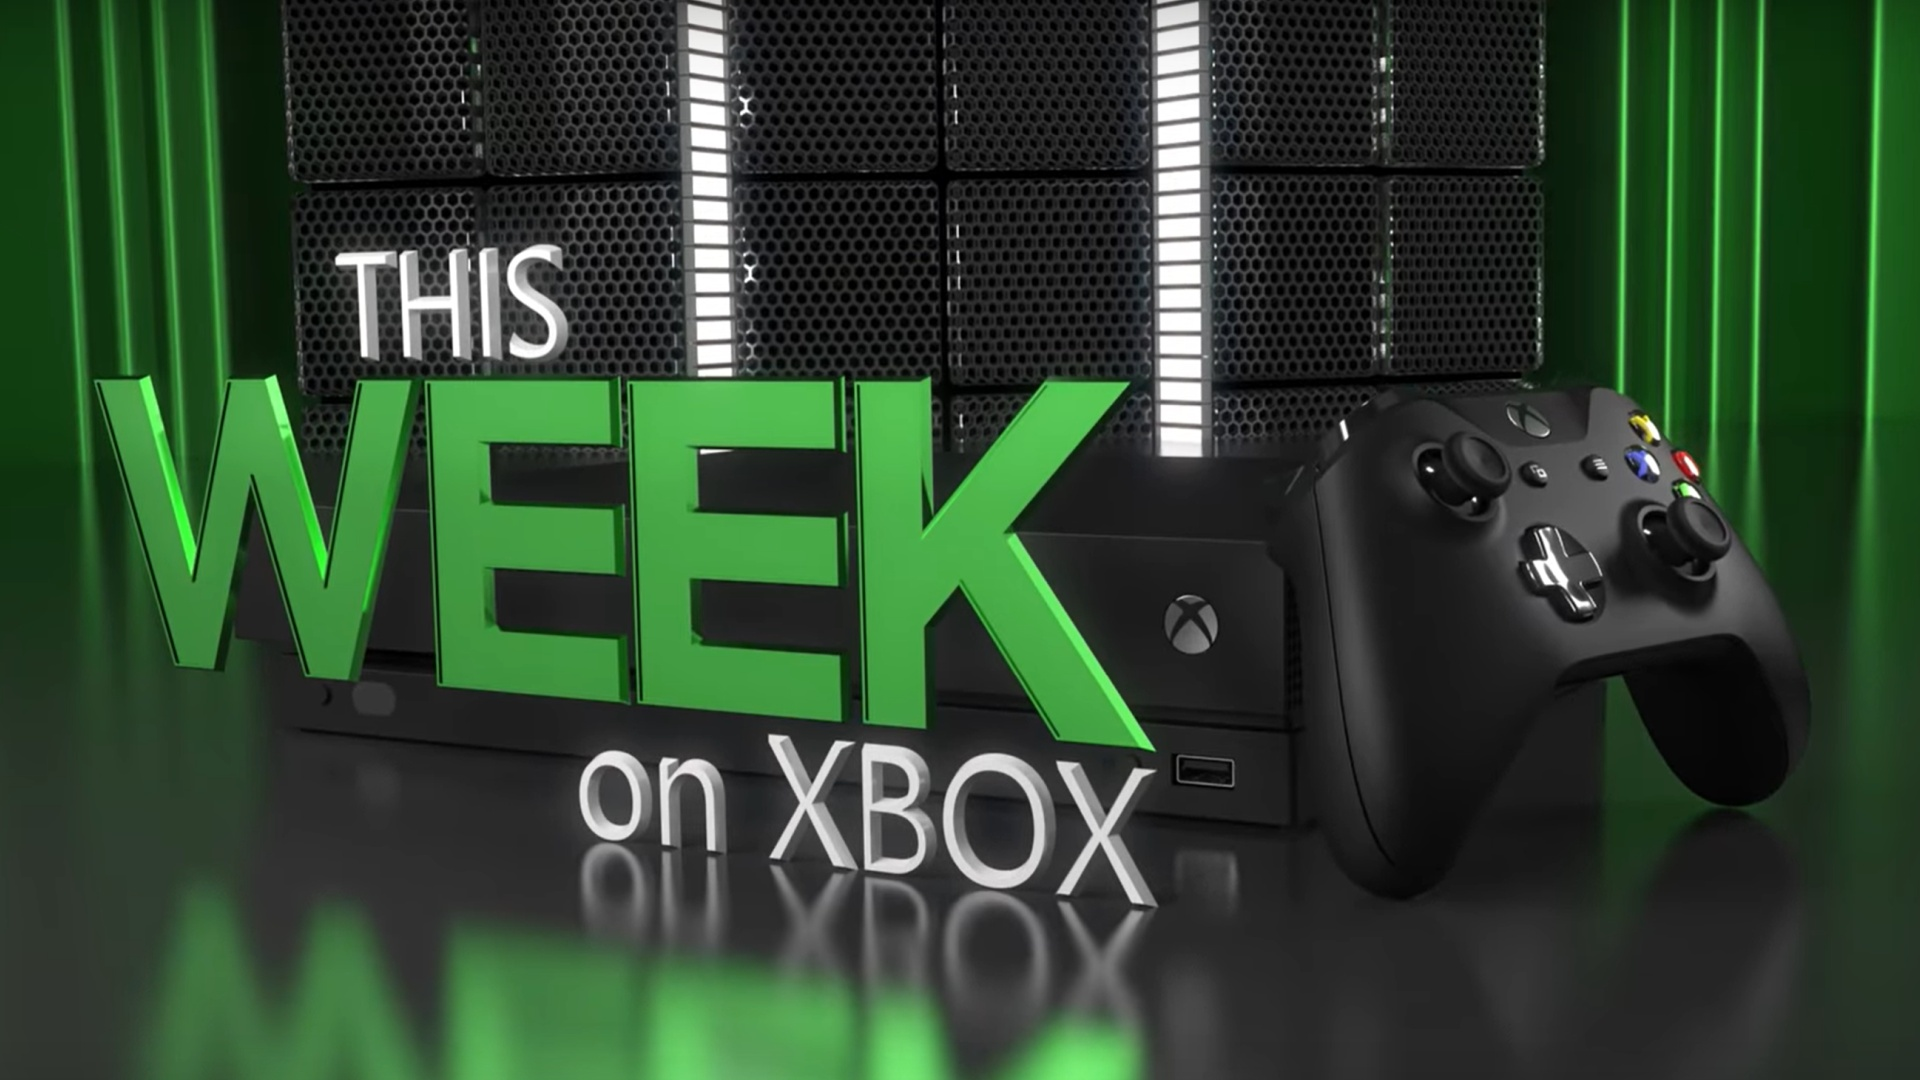 Video For This Week on Xbox: January 24, 2020